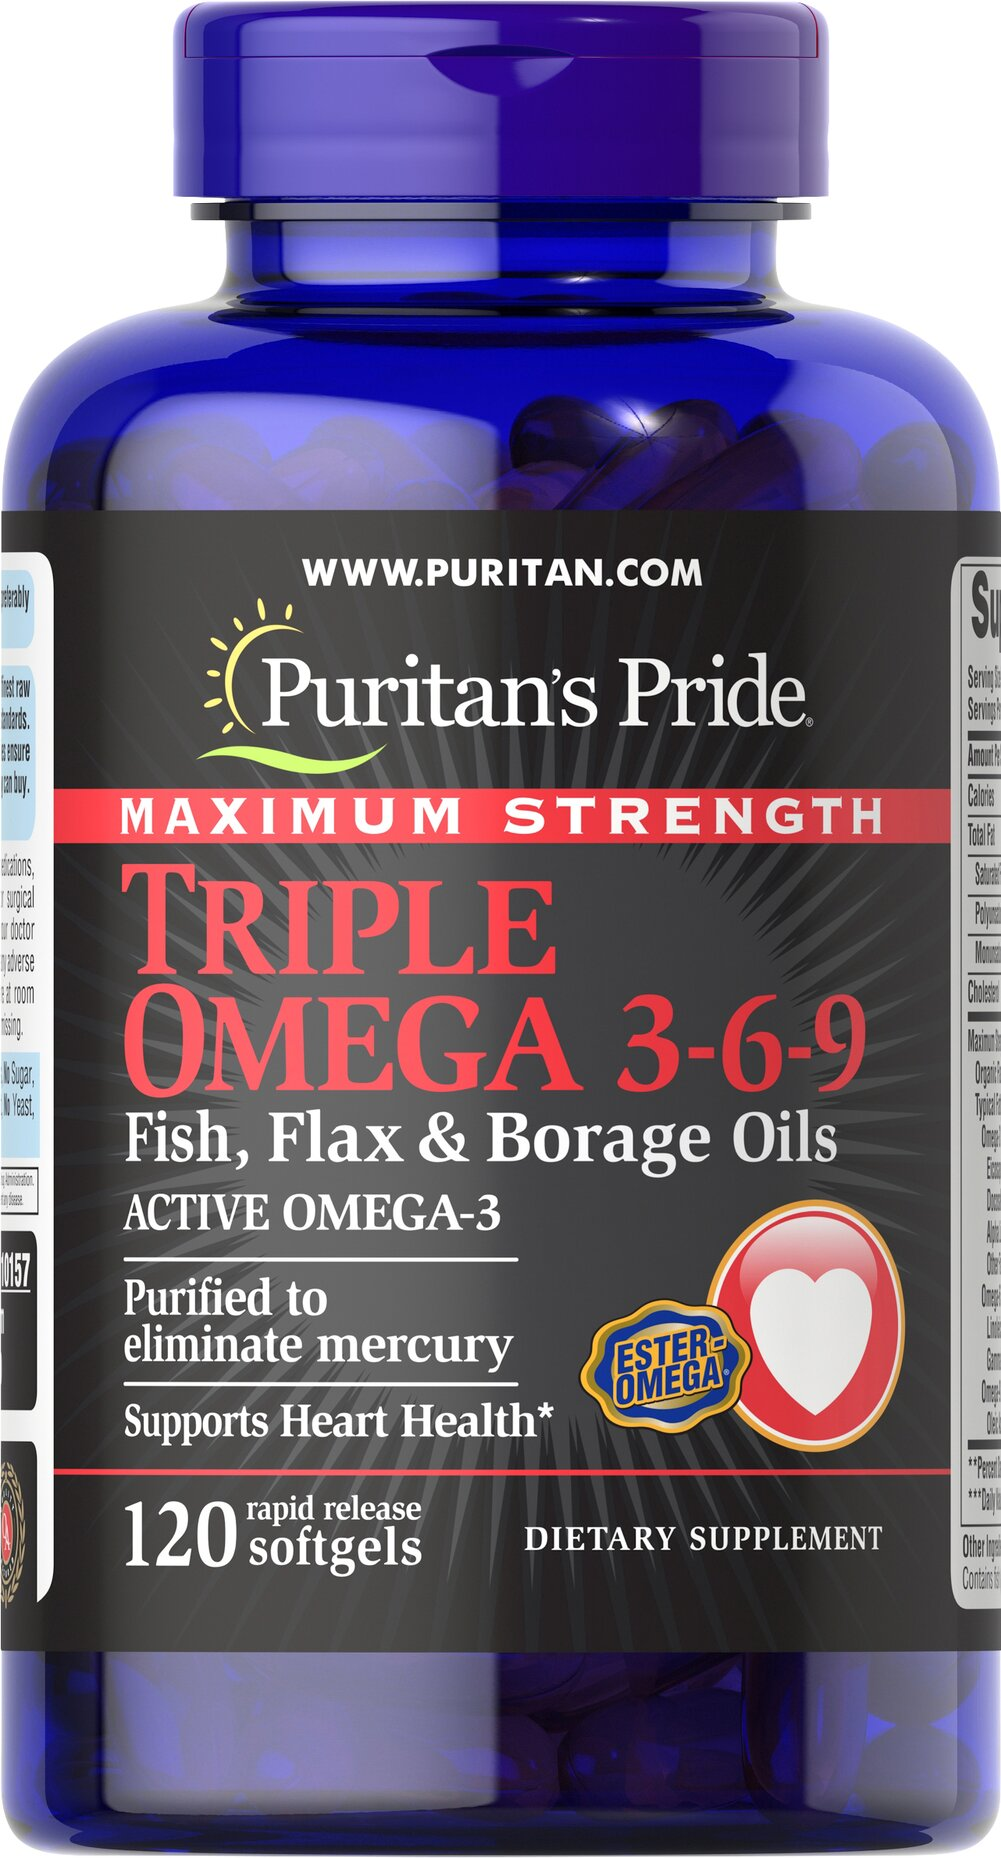 Maximum Strength Triple Omega 3-6-9 Fish, Flax & Borage Oils  120 Softgels  $26.99